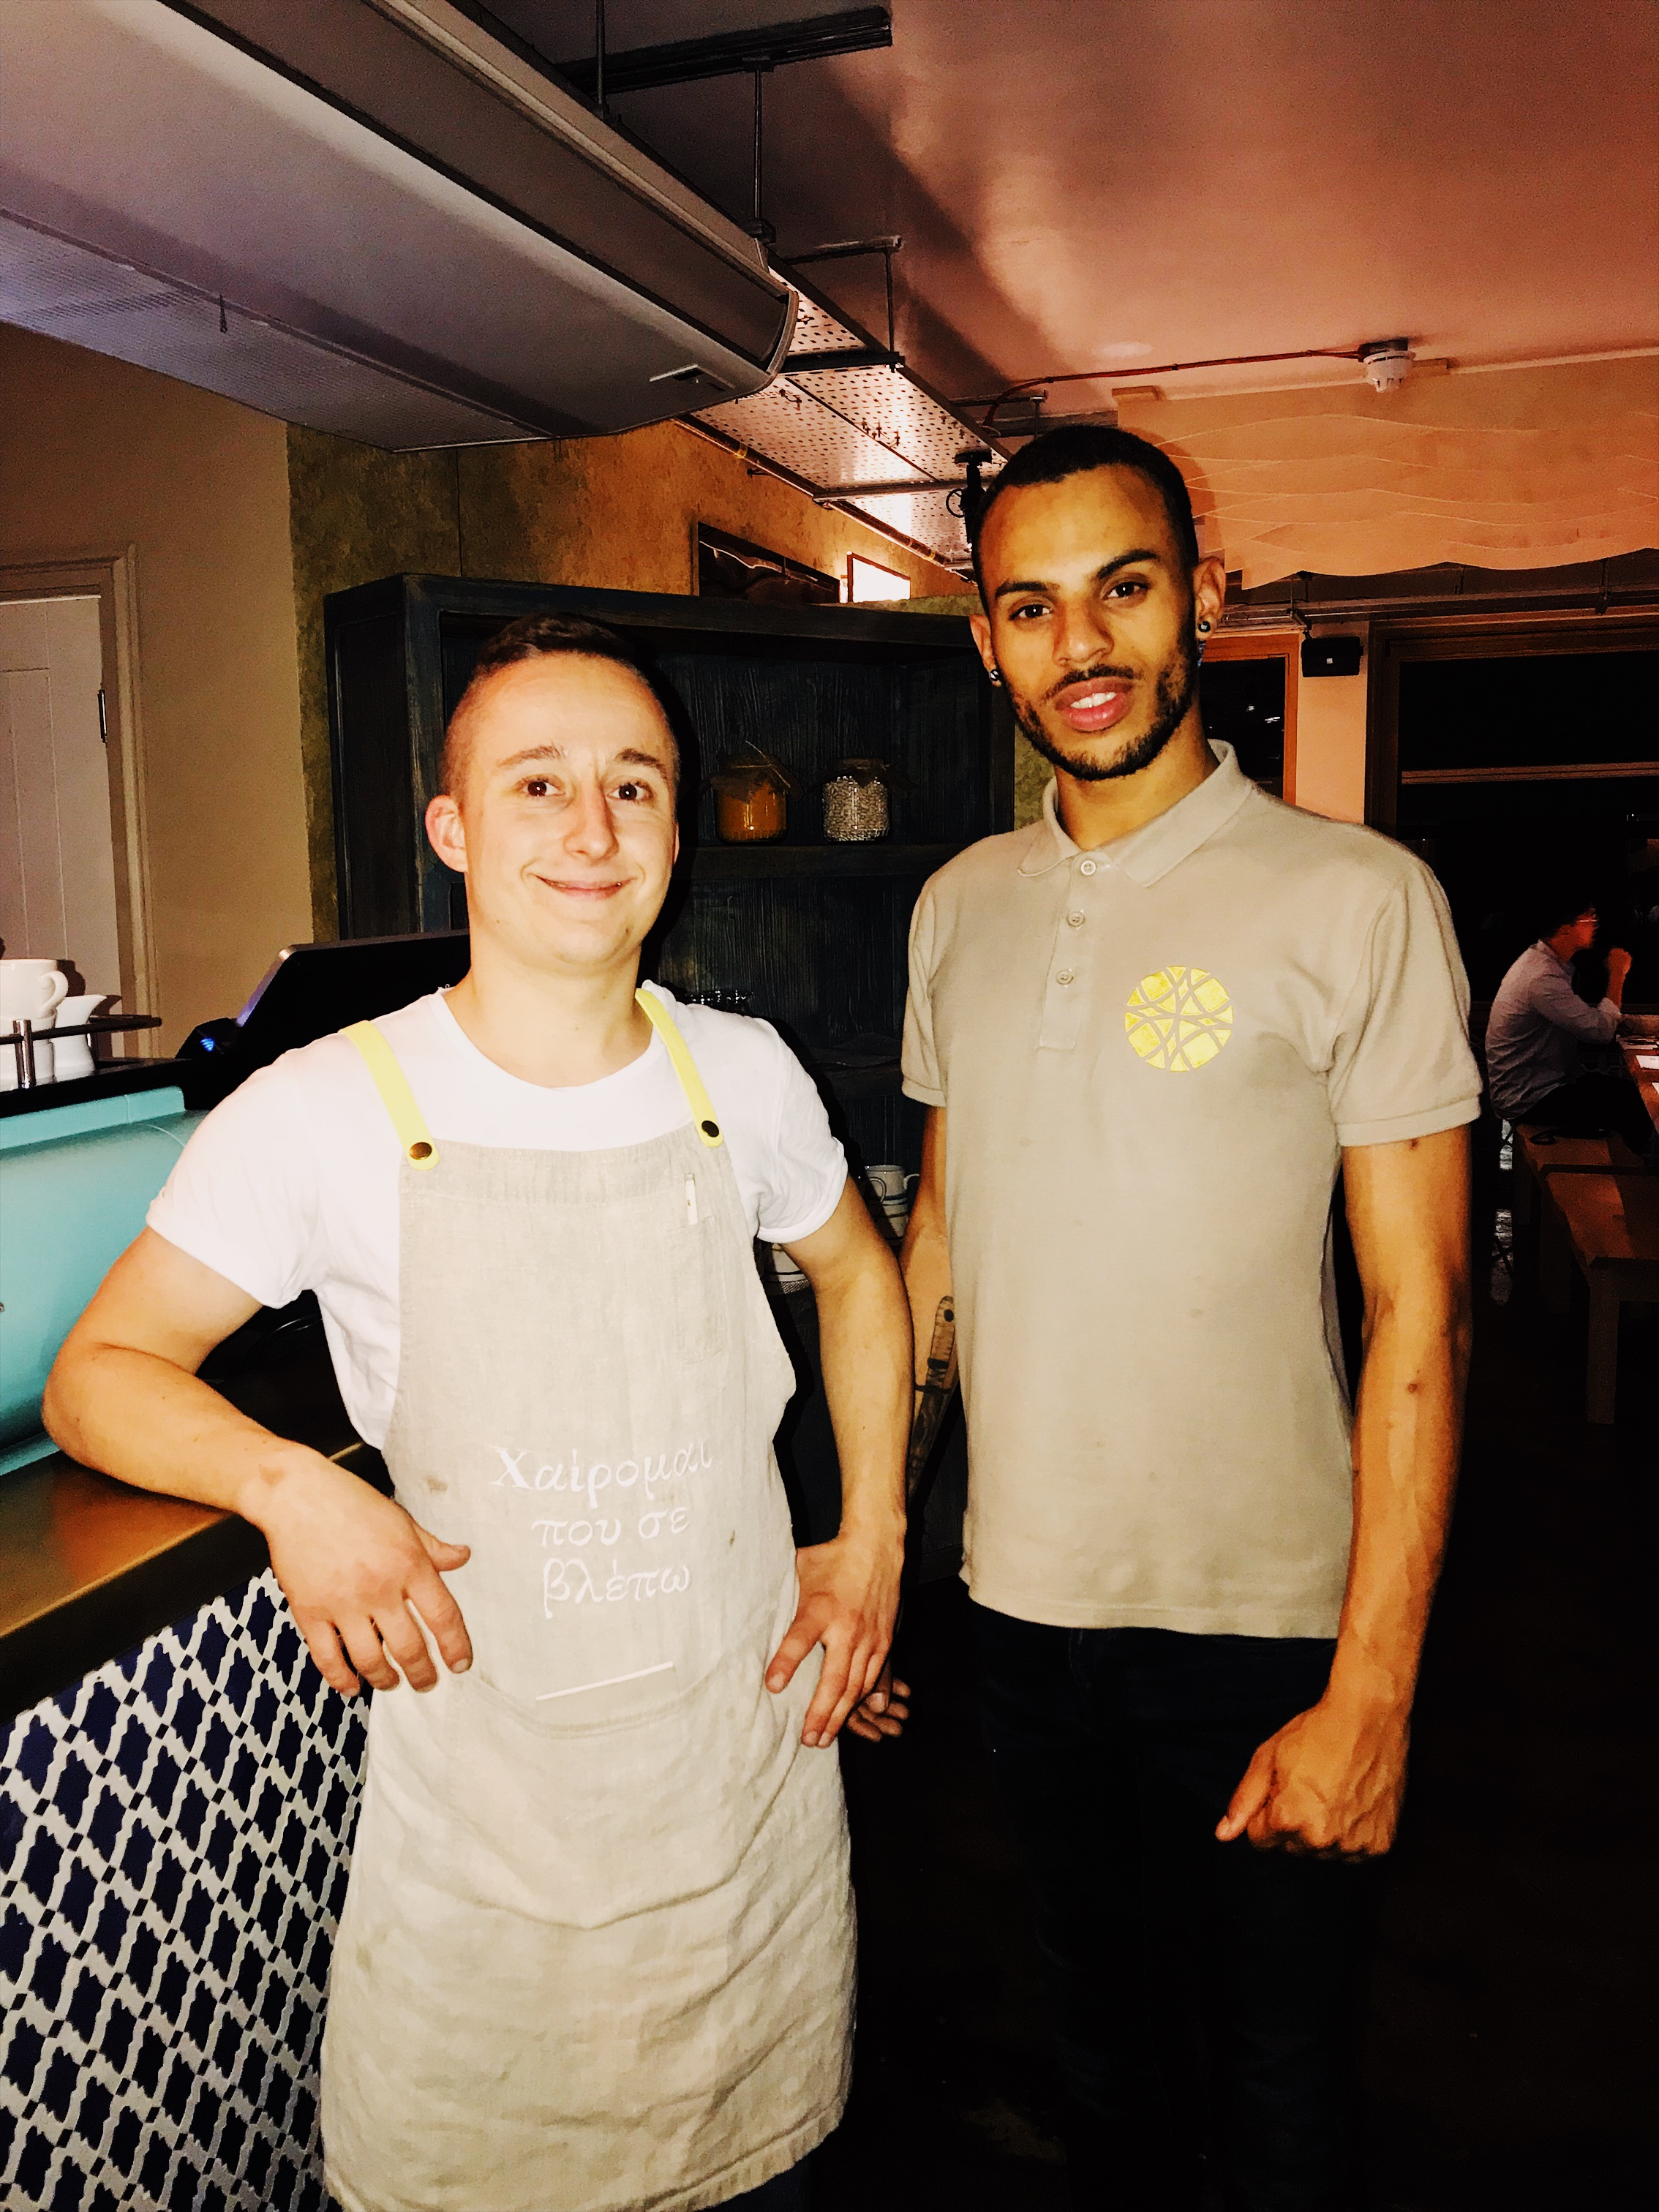 CERU's lovely team made us feel very welcome and recommended the tastiest dishes to try